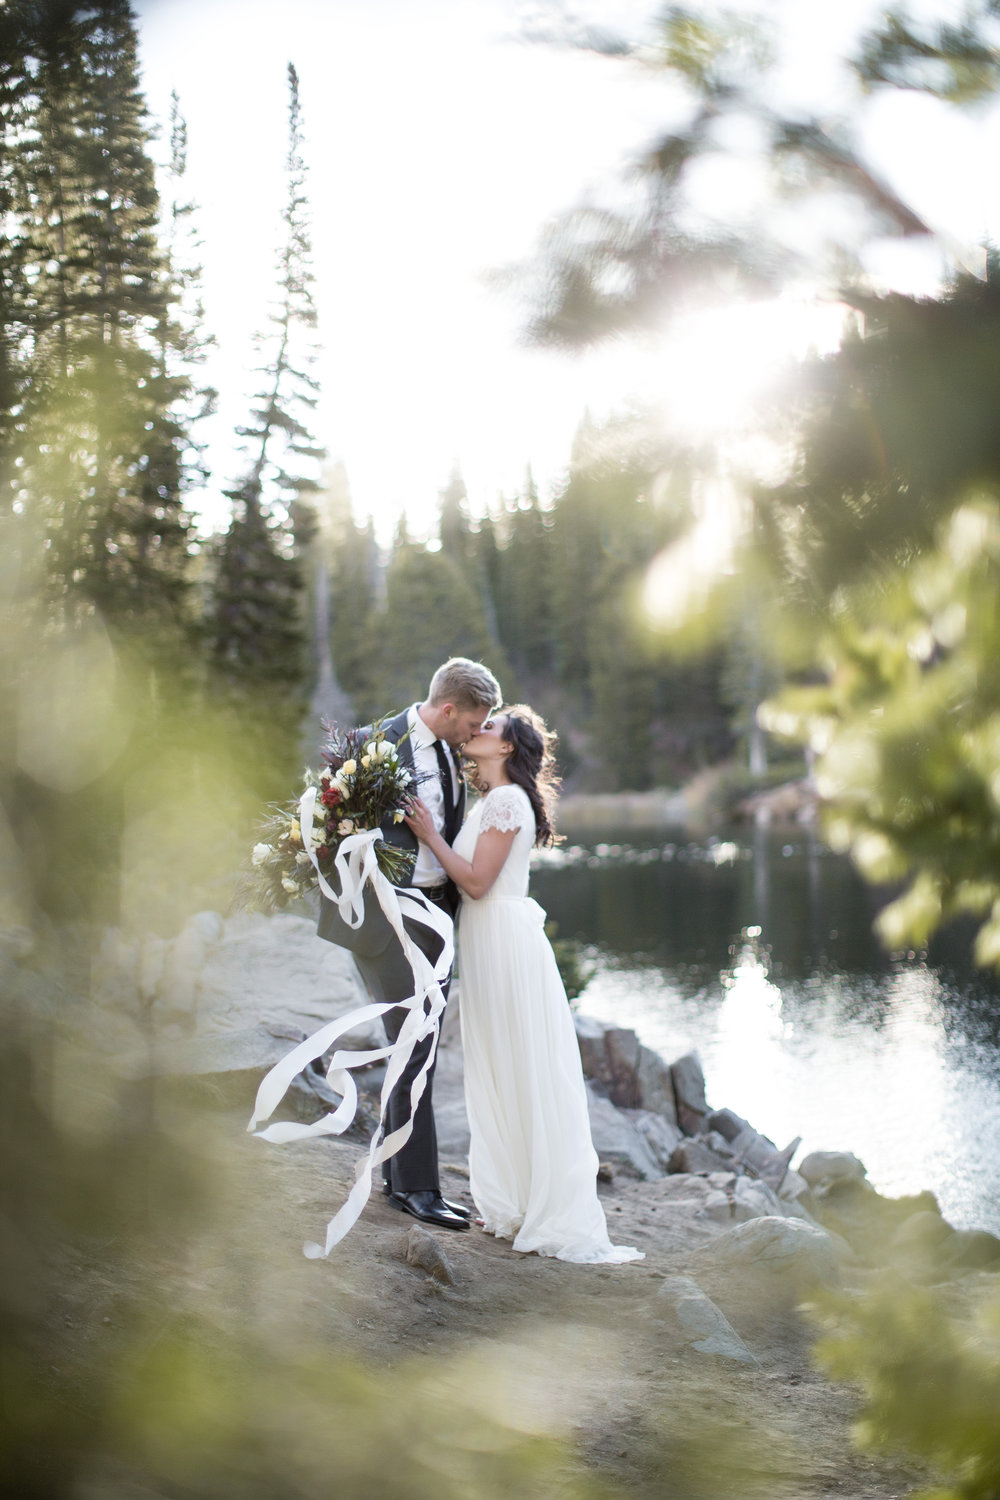 UtahValleyBrideShootTR2016 (85 of 110).jpg